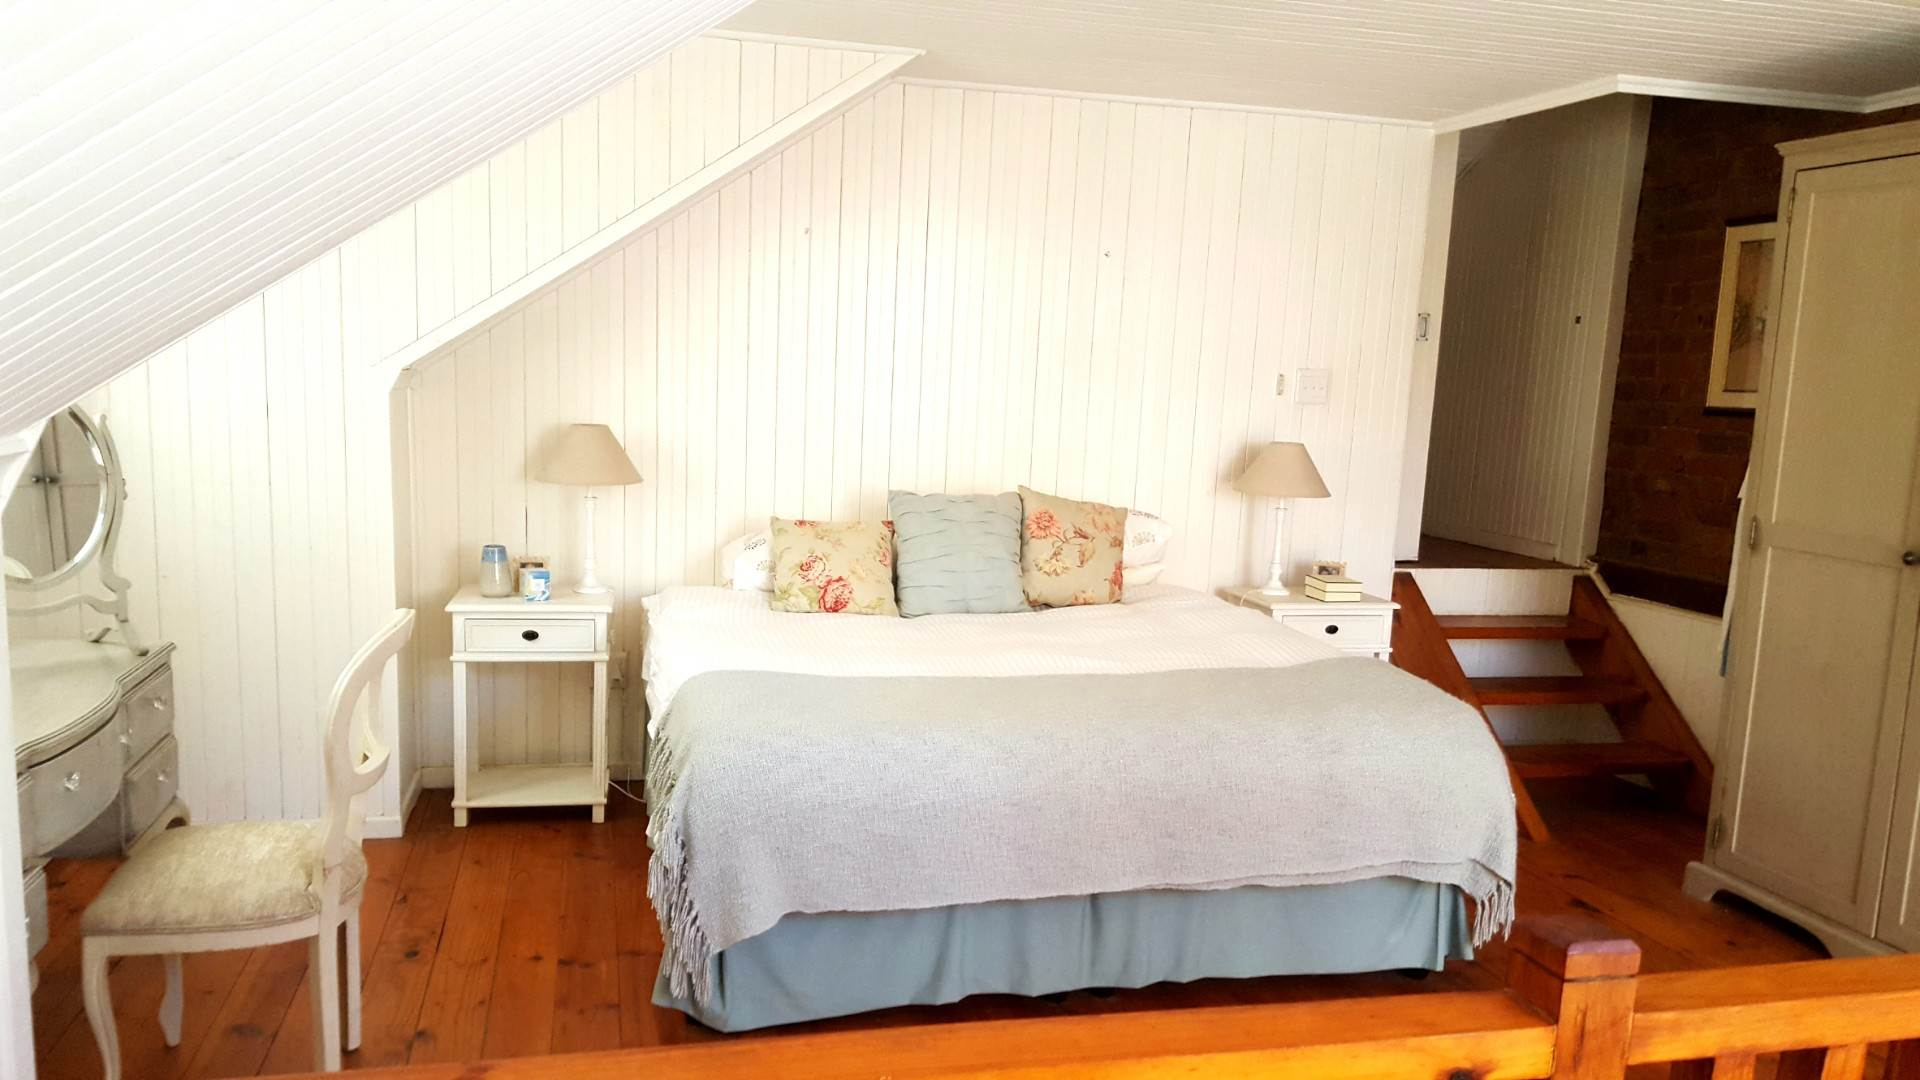 3 BedroomHouse To Rent In Tamboerskloof